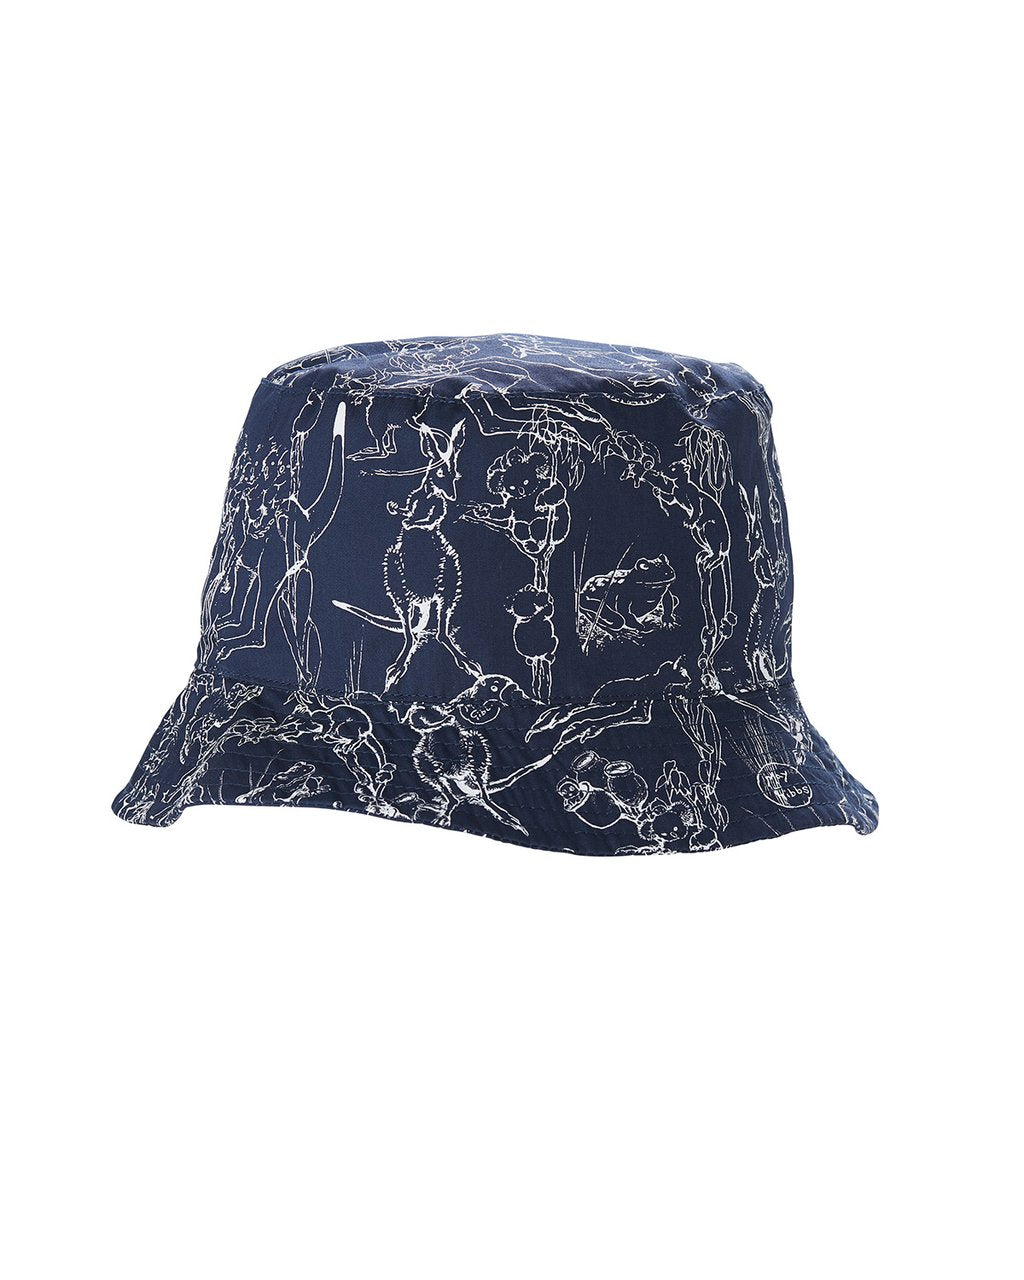 Walnut May Gibbs Mini Sunny Sunhat - Bush dance - Navy